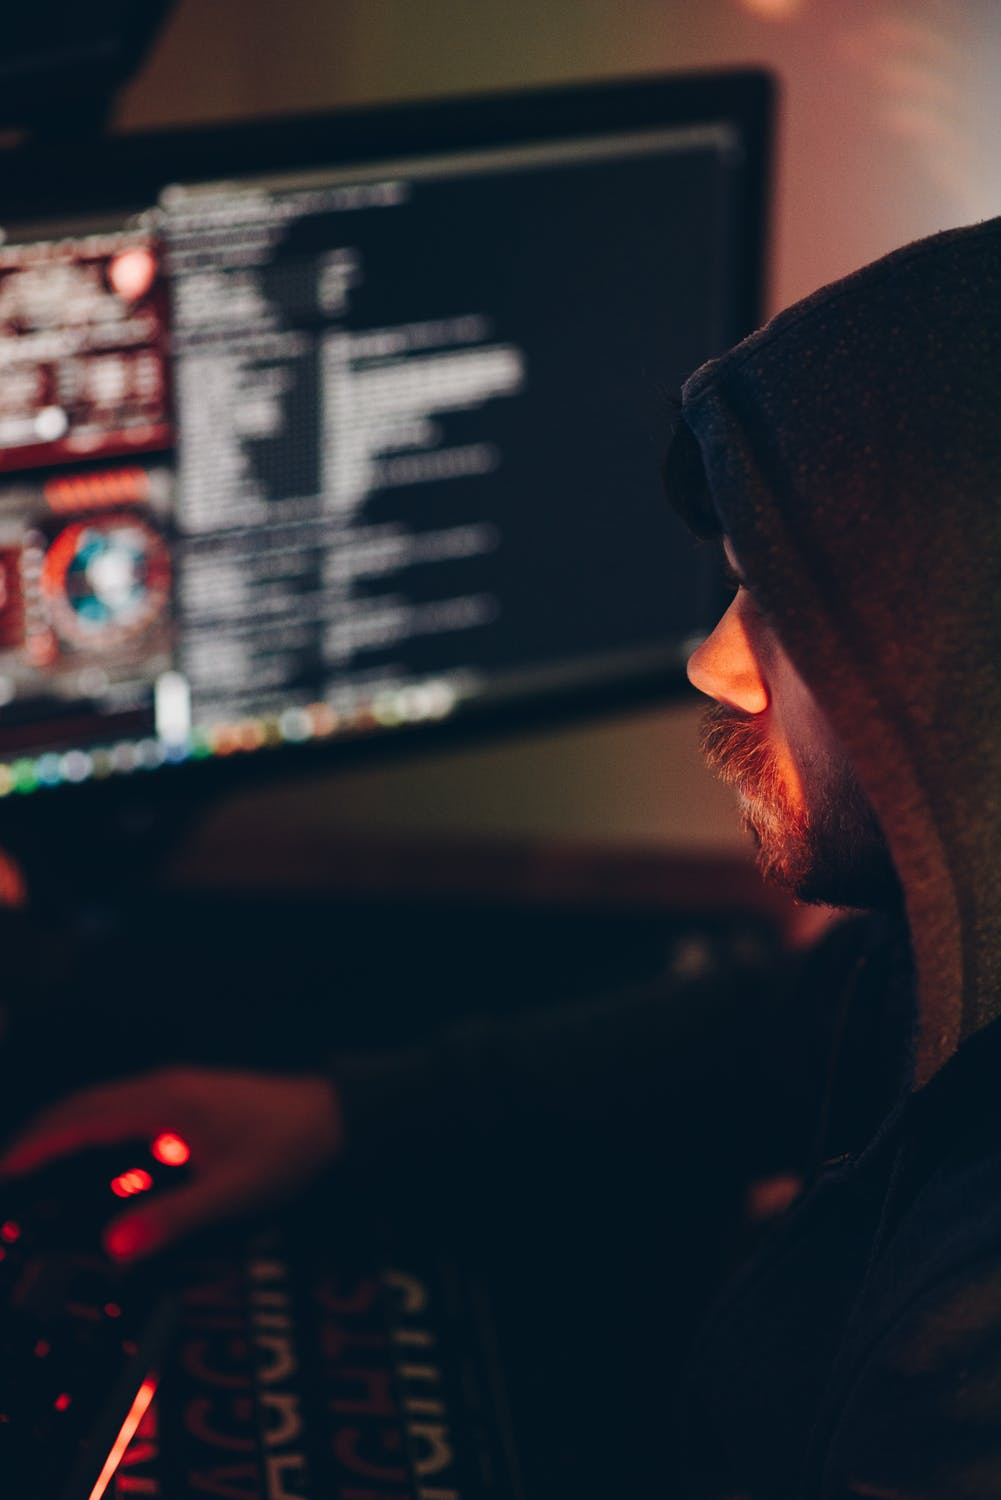 Pros and cons of instagram man in black hoodie on computer with dark lighting